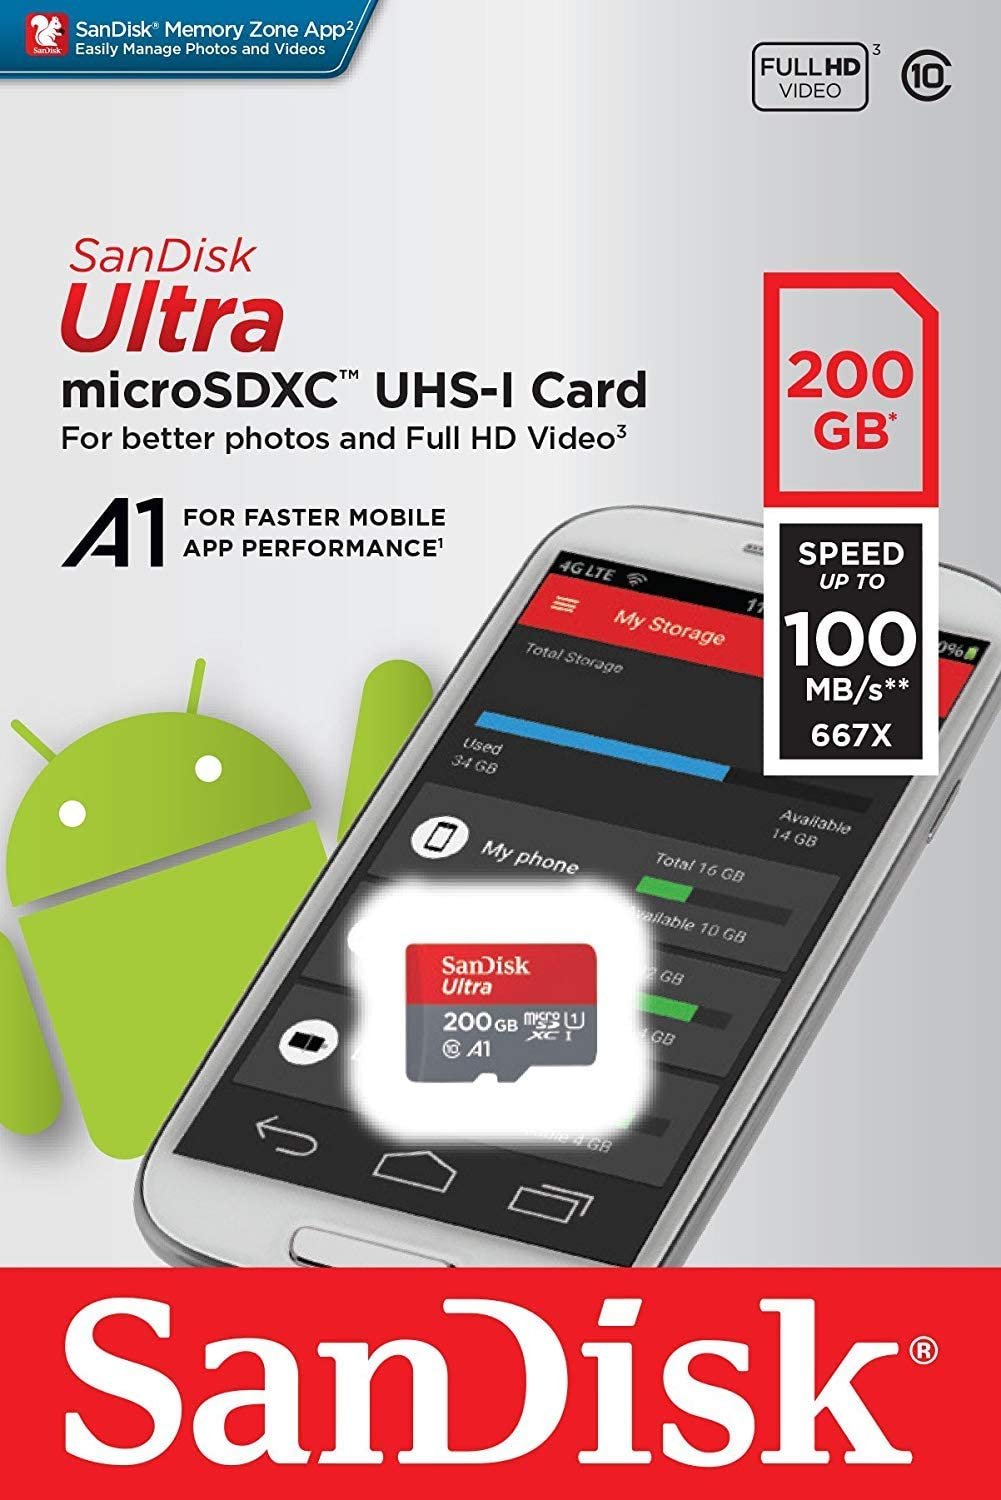 100MBs A1 U1 C10 Works with SanDisk SanDisk Ultra 200GB MicroSDXC Verified for BLU Dash L4 LTE by SanFlash